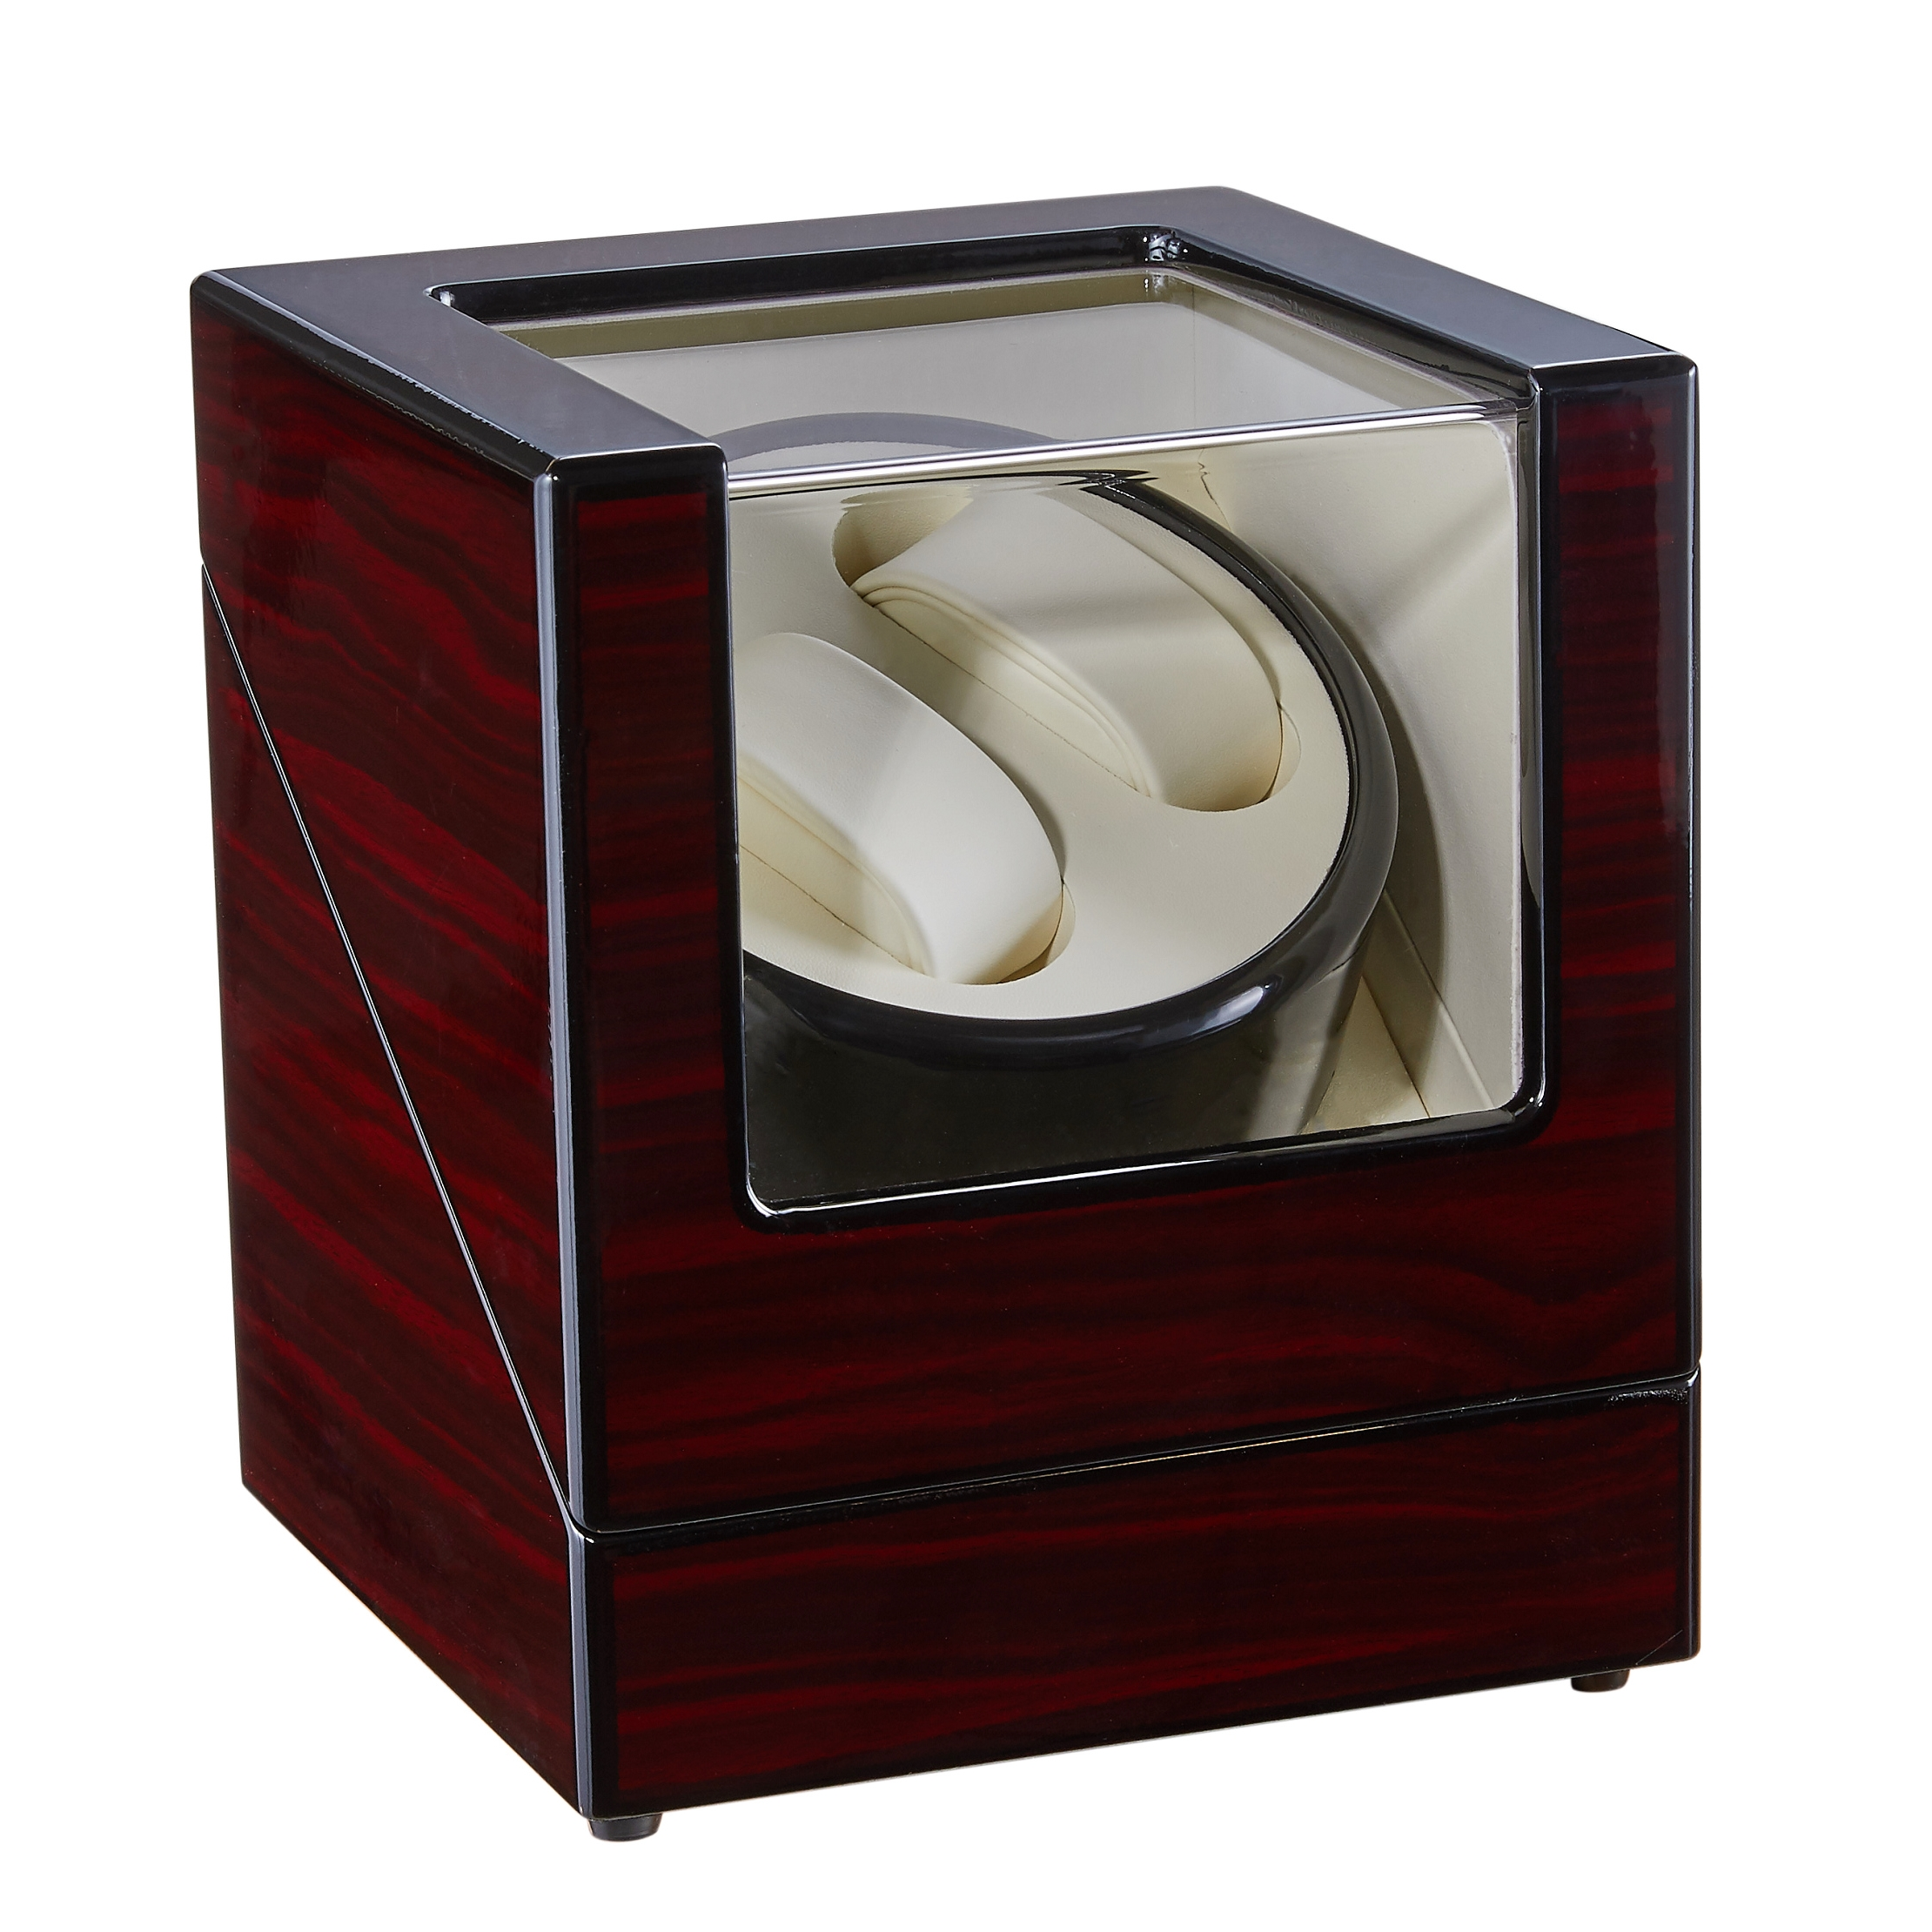 Red Automatic Watch Winder Box Case Holder Mechanical Watch Display Organizer Luxury Motor Shaker PU Leather EU/US/AU/UK Plug | Watch Winders